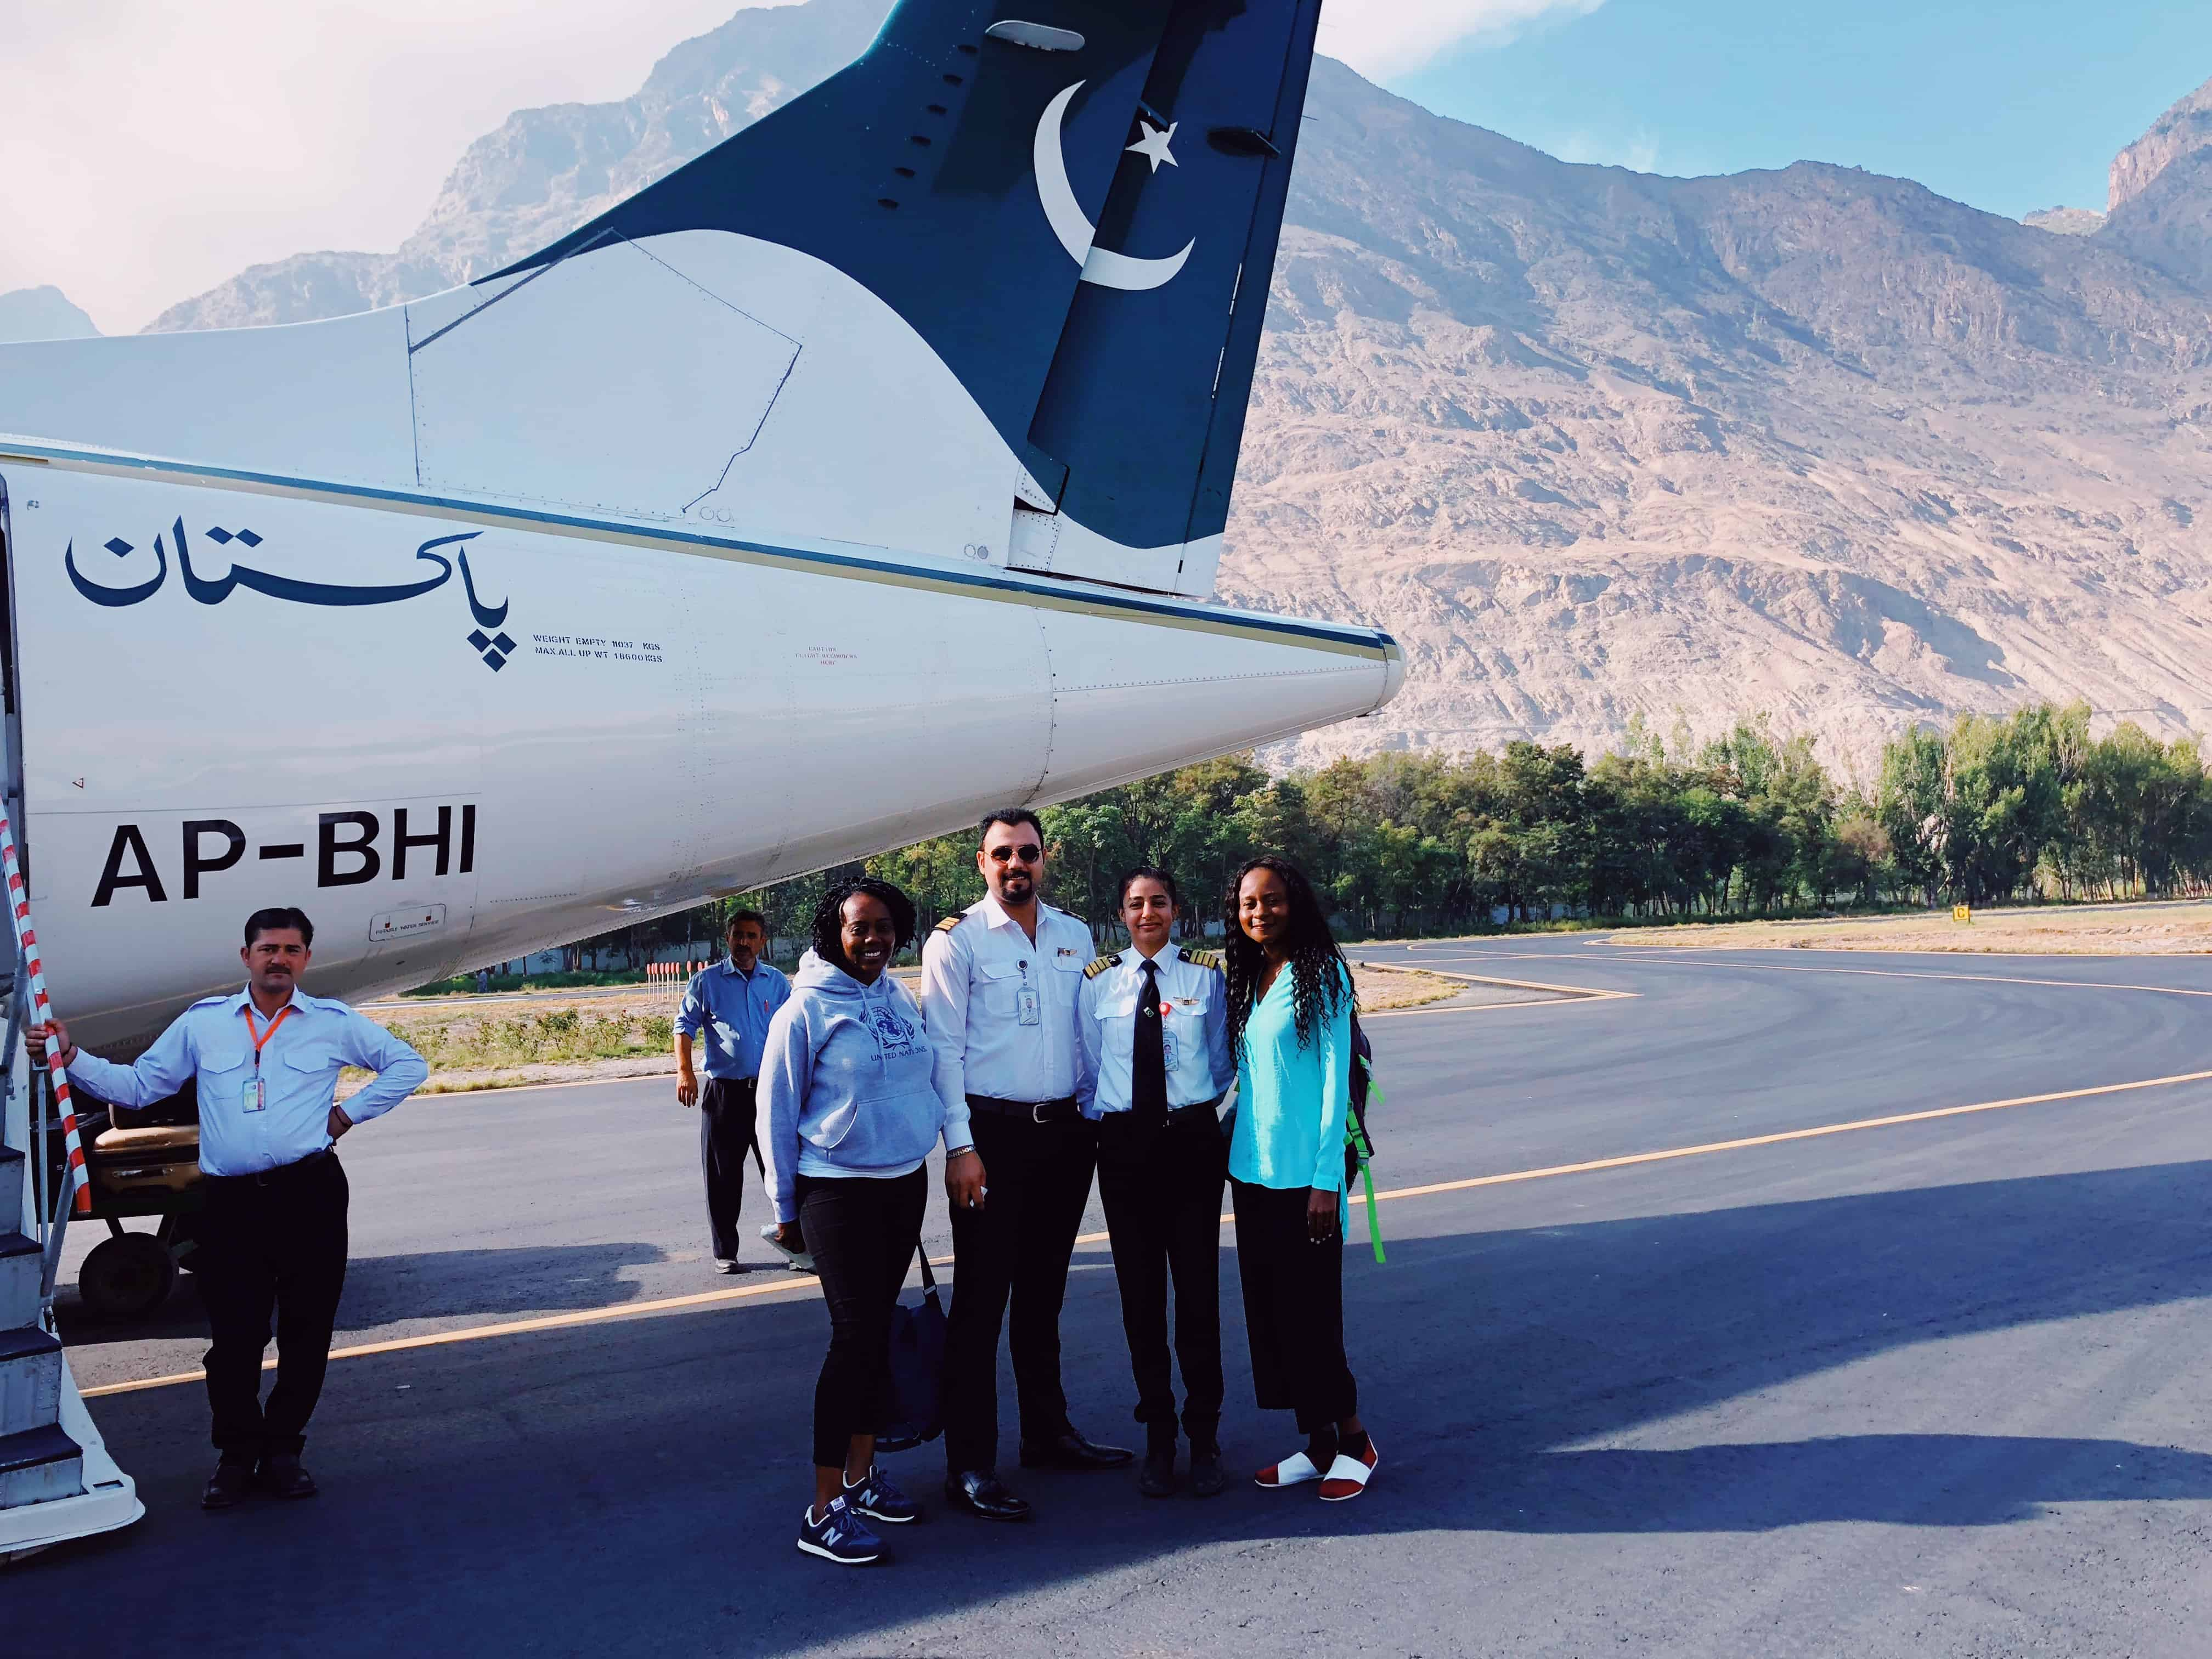 Gilgit airport, Hunza Valley northern Pakistan